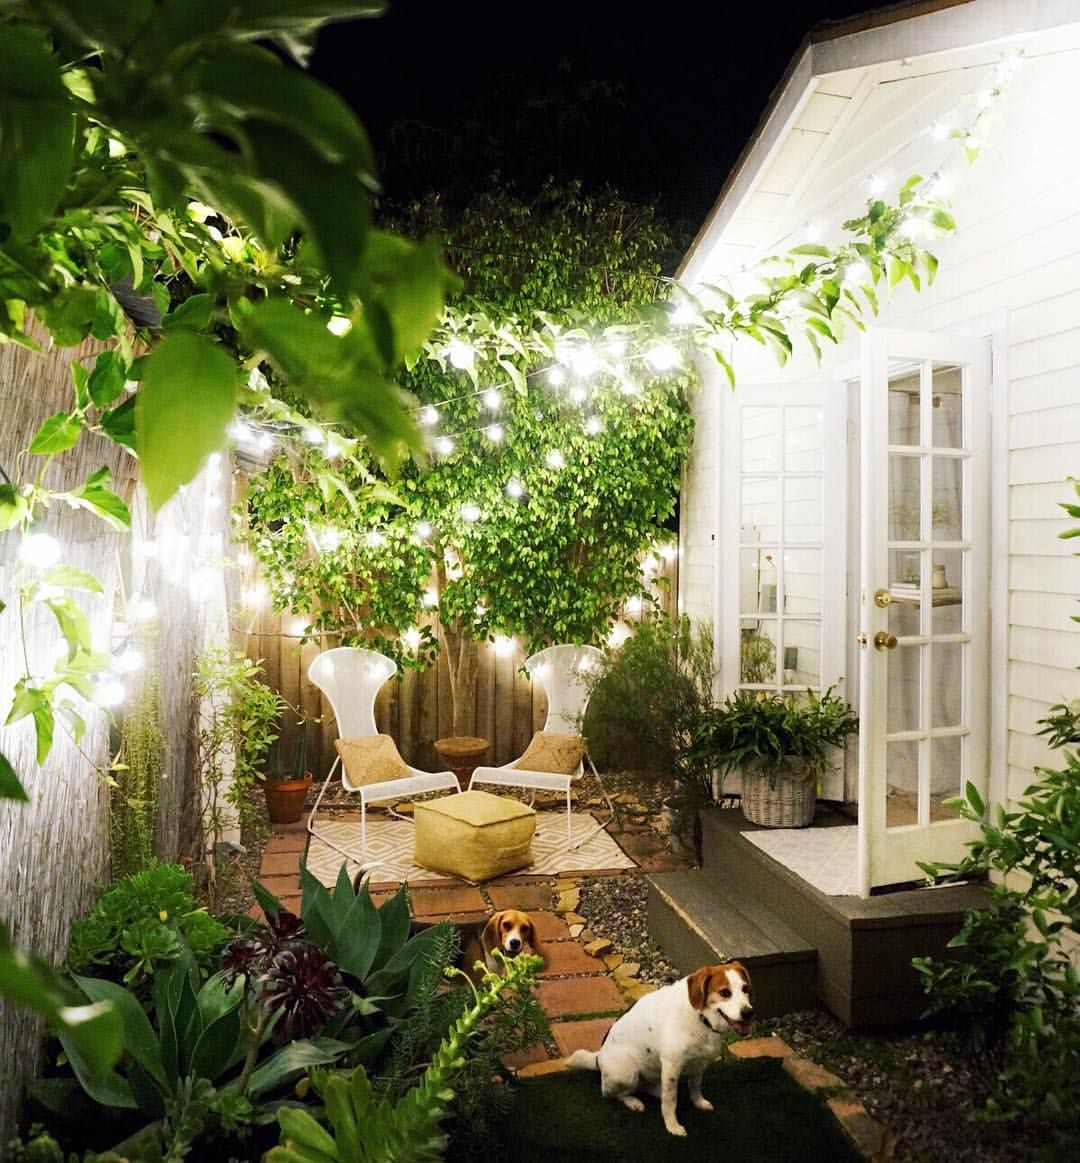 Awesome Garden Lights for Your Sweet Backyard | Pinterest | Gnomes ...